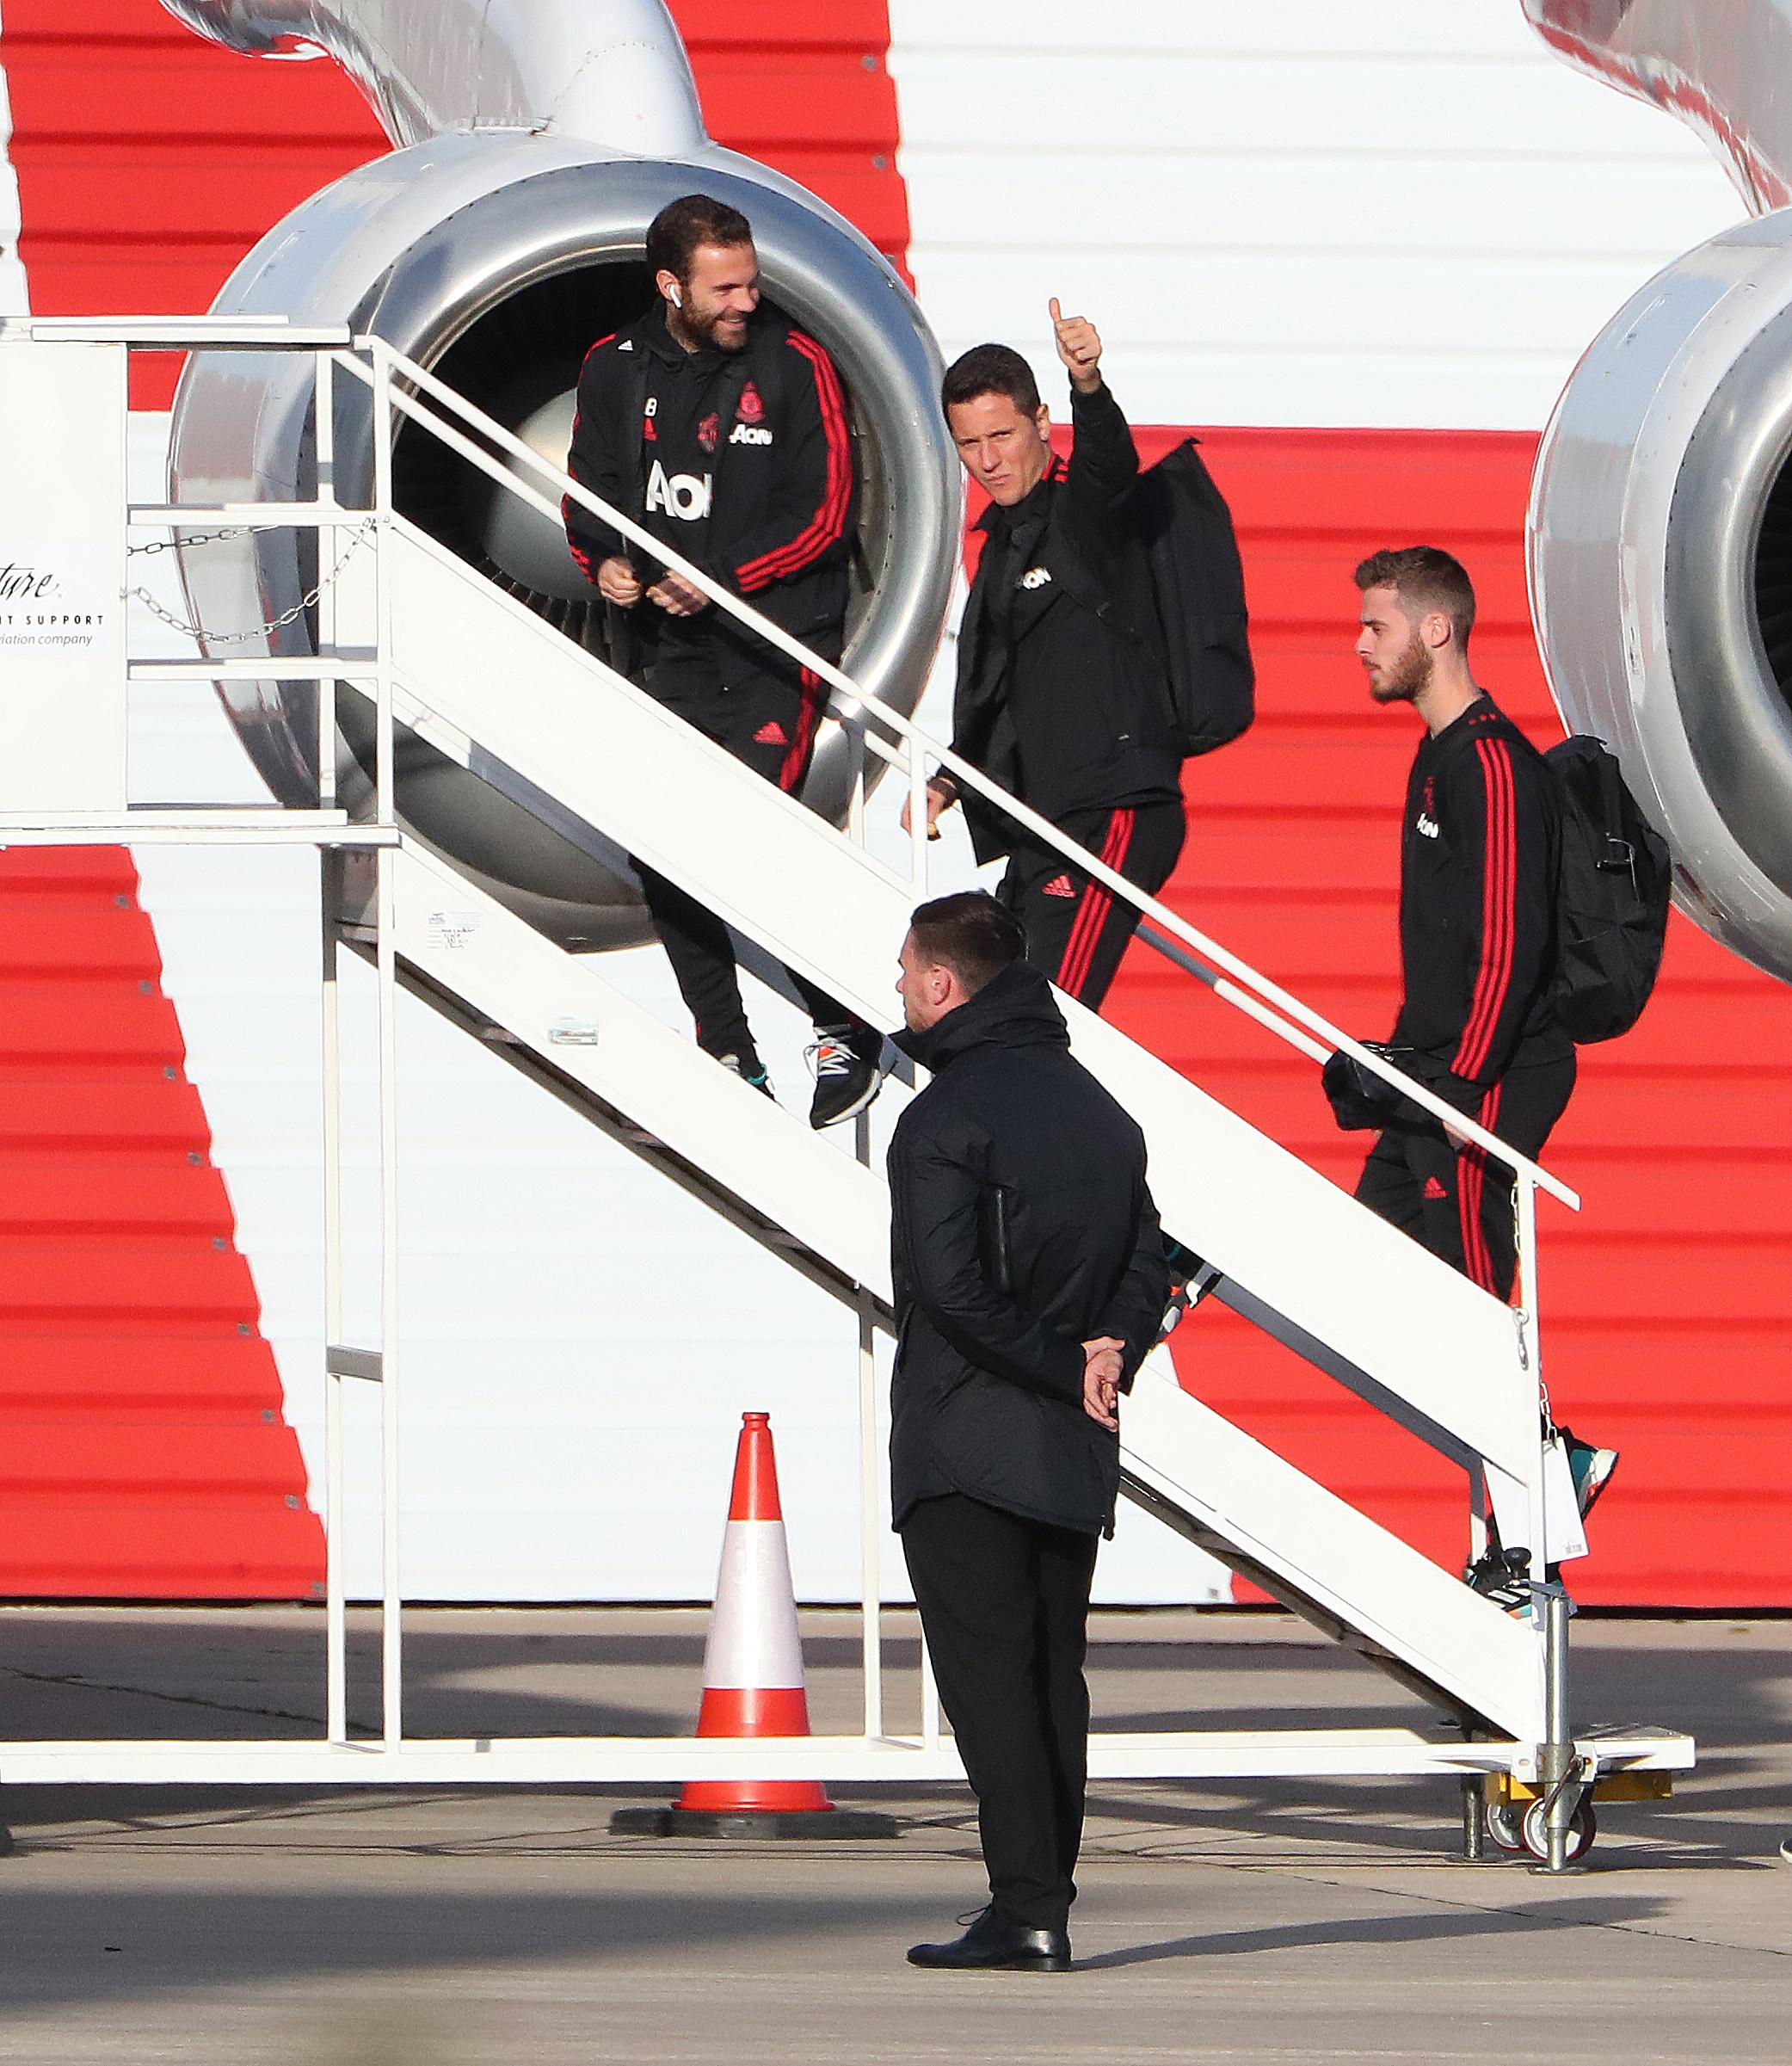 Ander Herrera flies put with the Manchester United squad to face Bournemouth today